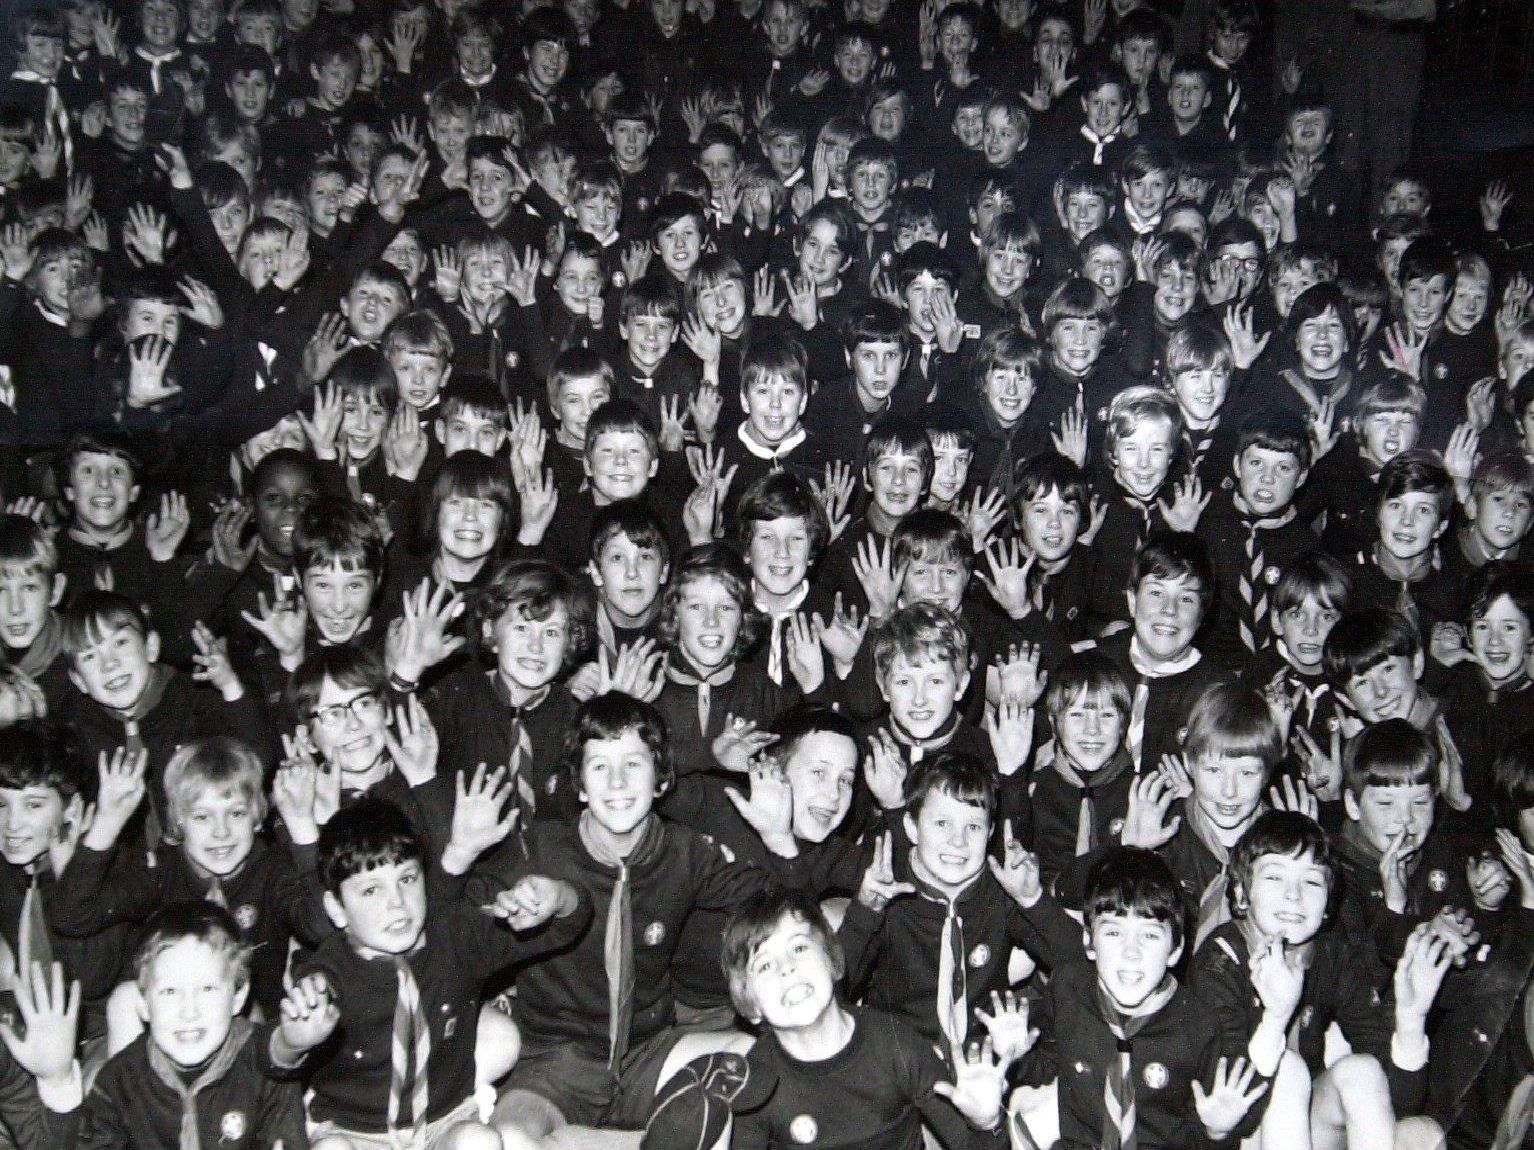 The smiling faces of a large number of Preston cub scouts, taken in 1970